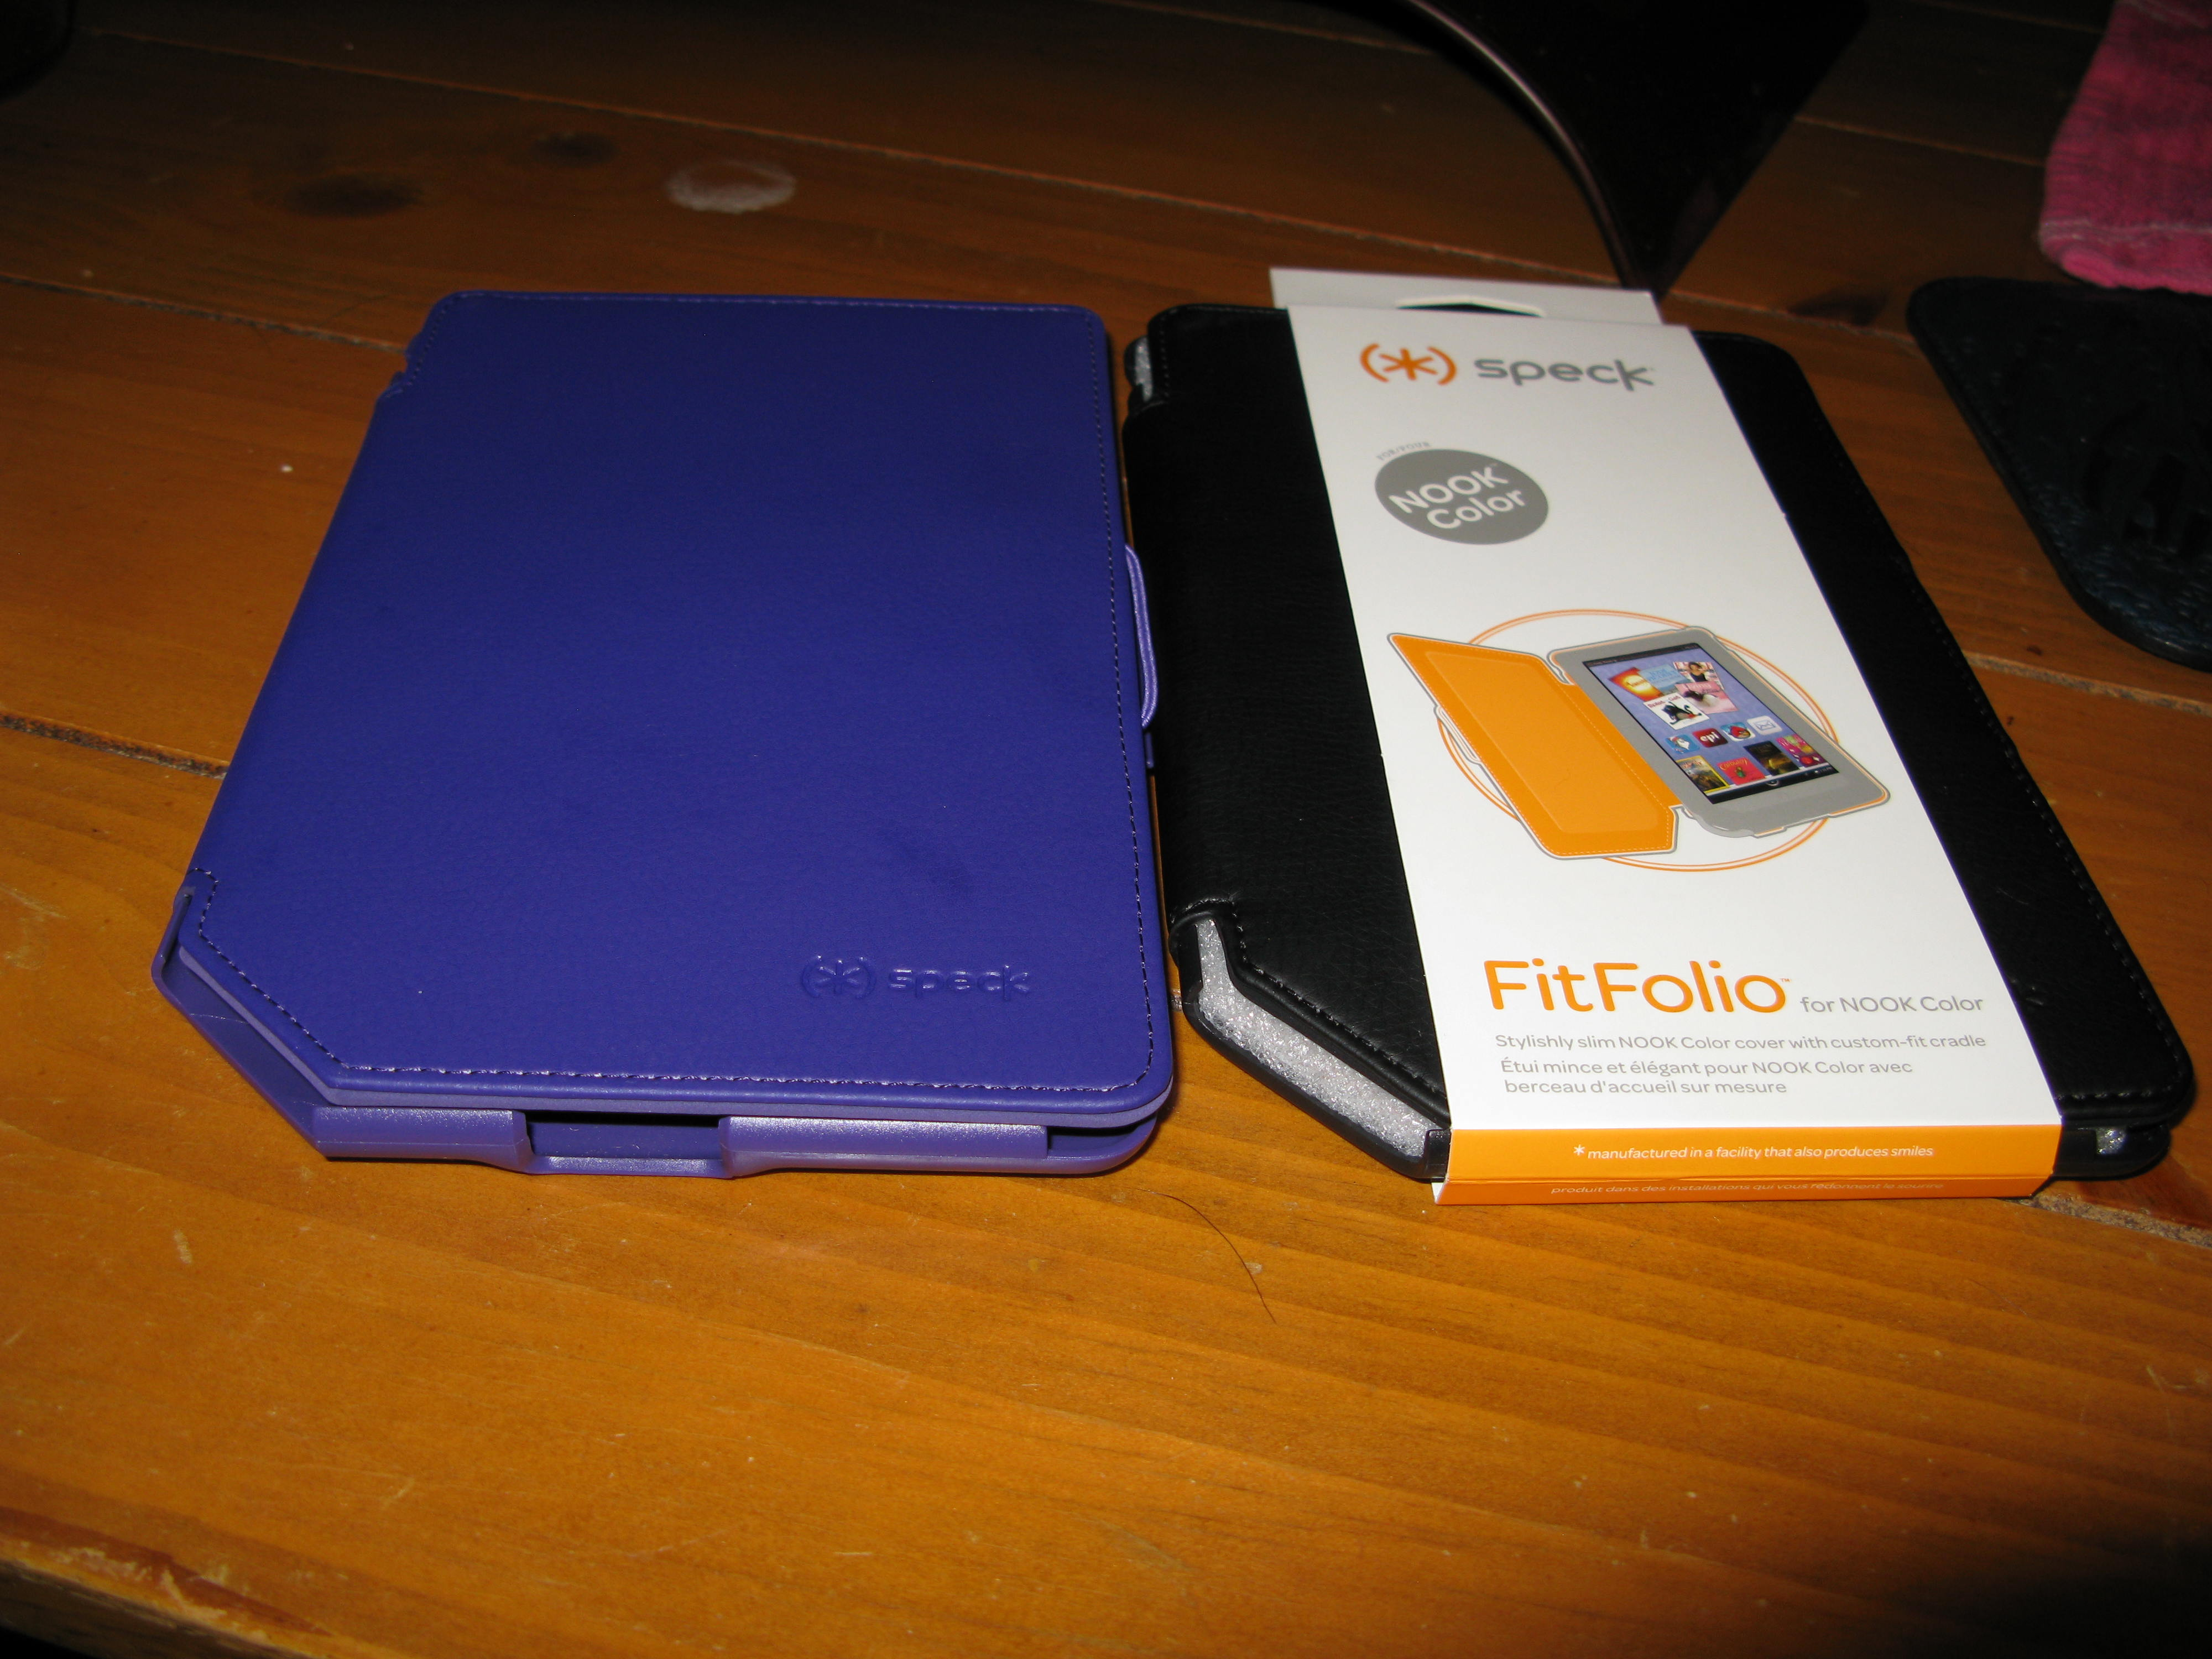 GearDiary Speck FitFolio for NOOKcolor Review